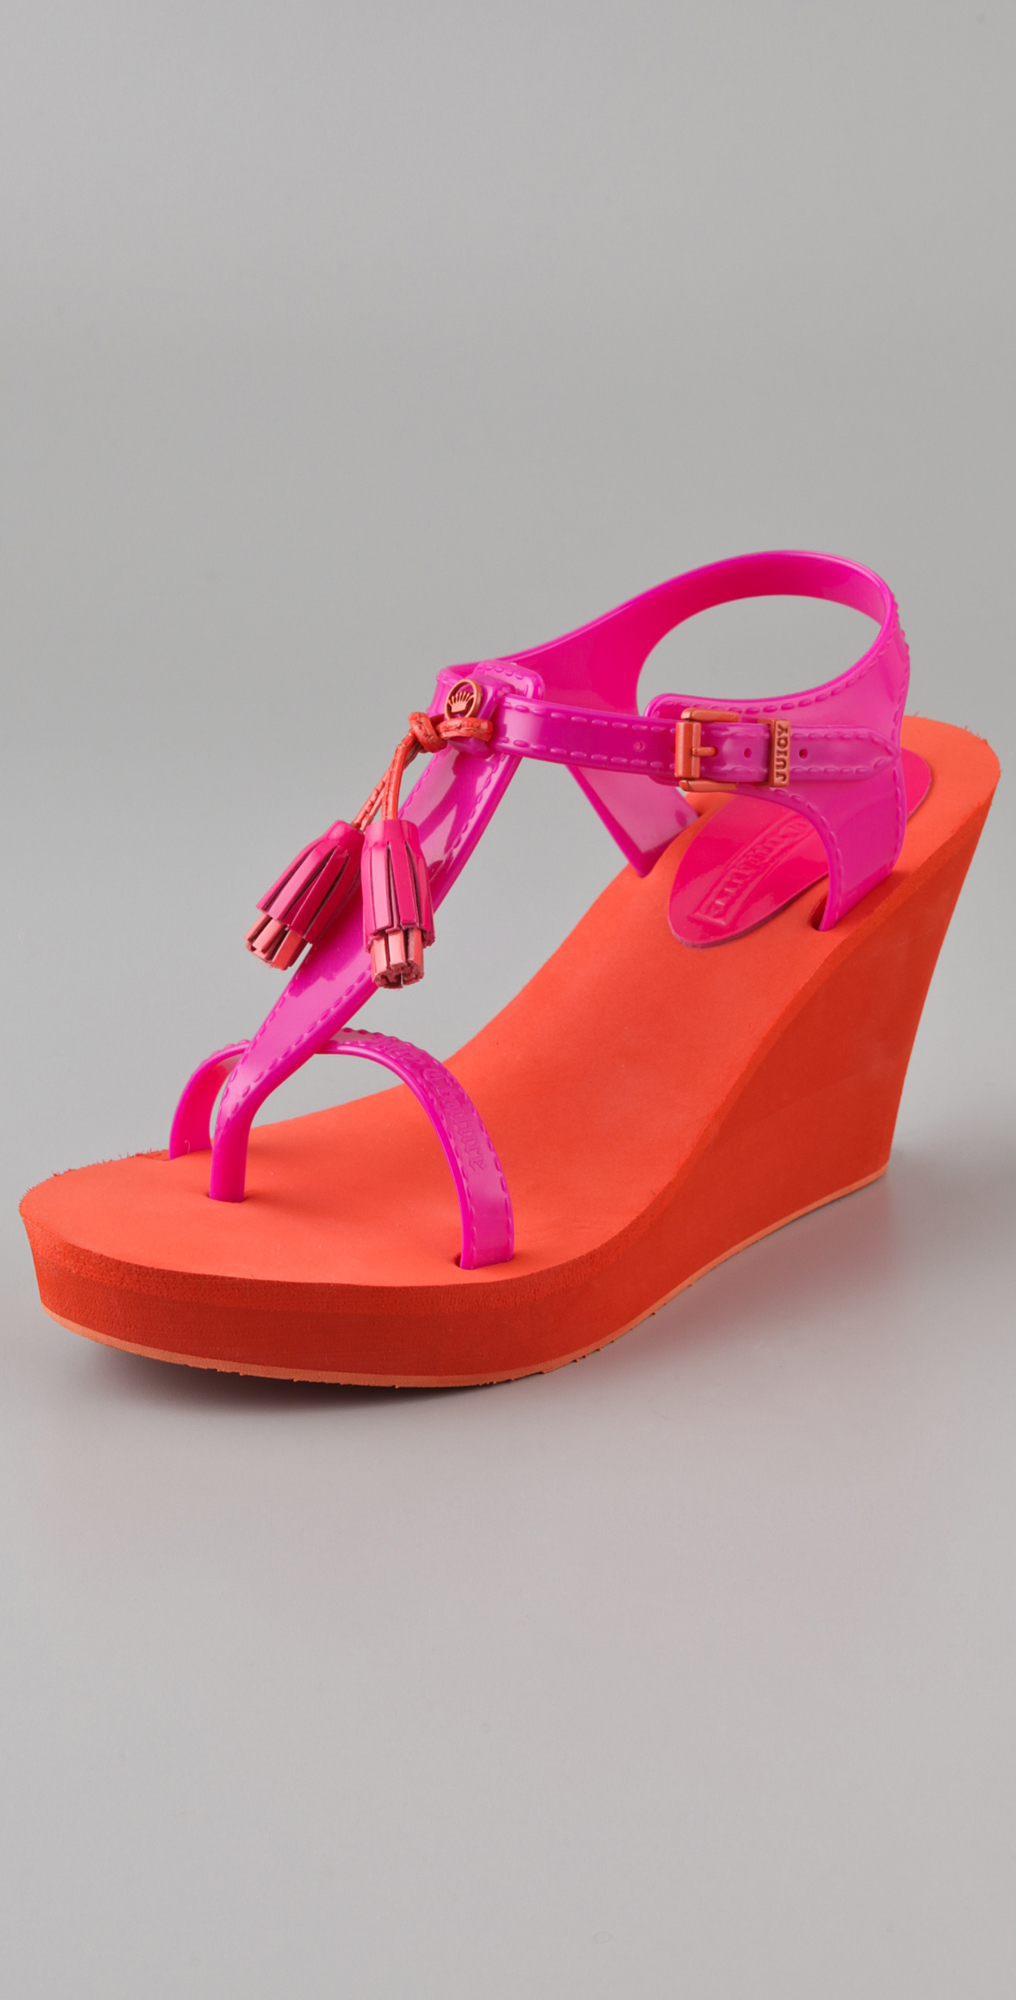 d03f828655d9 Juicy Couture Lily Wedge Sandals on PopScreen